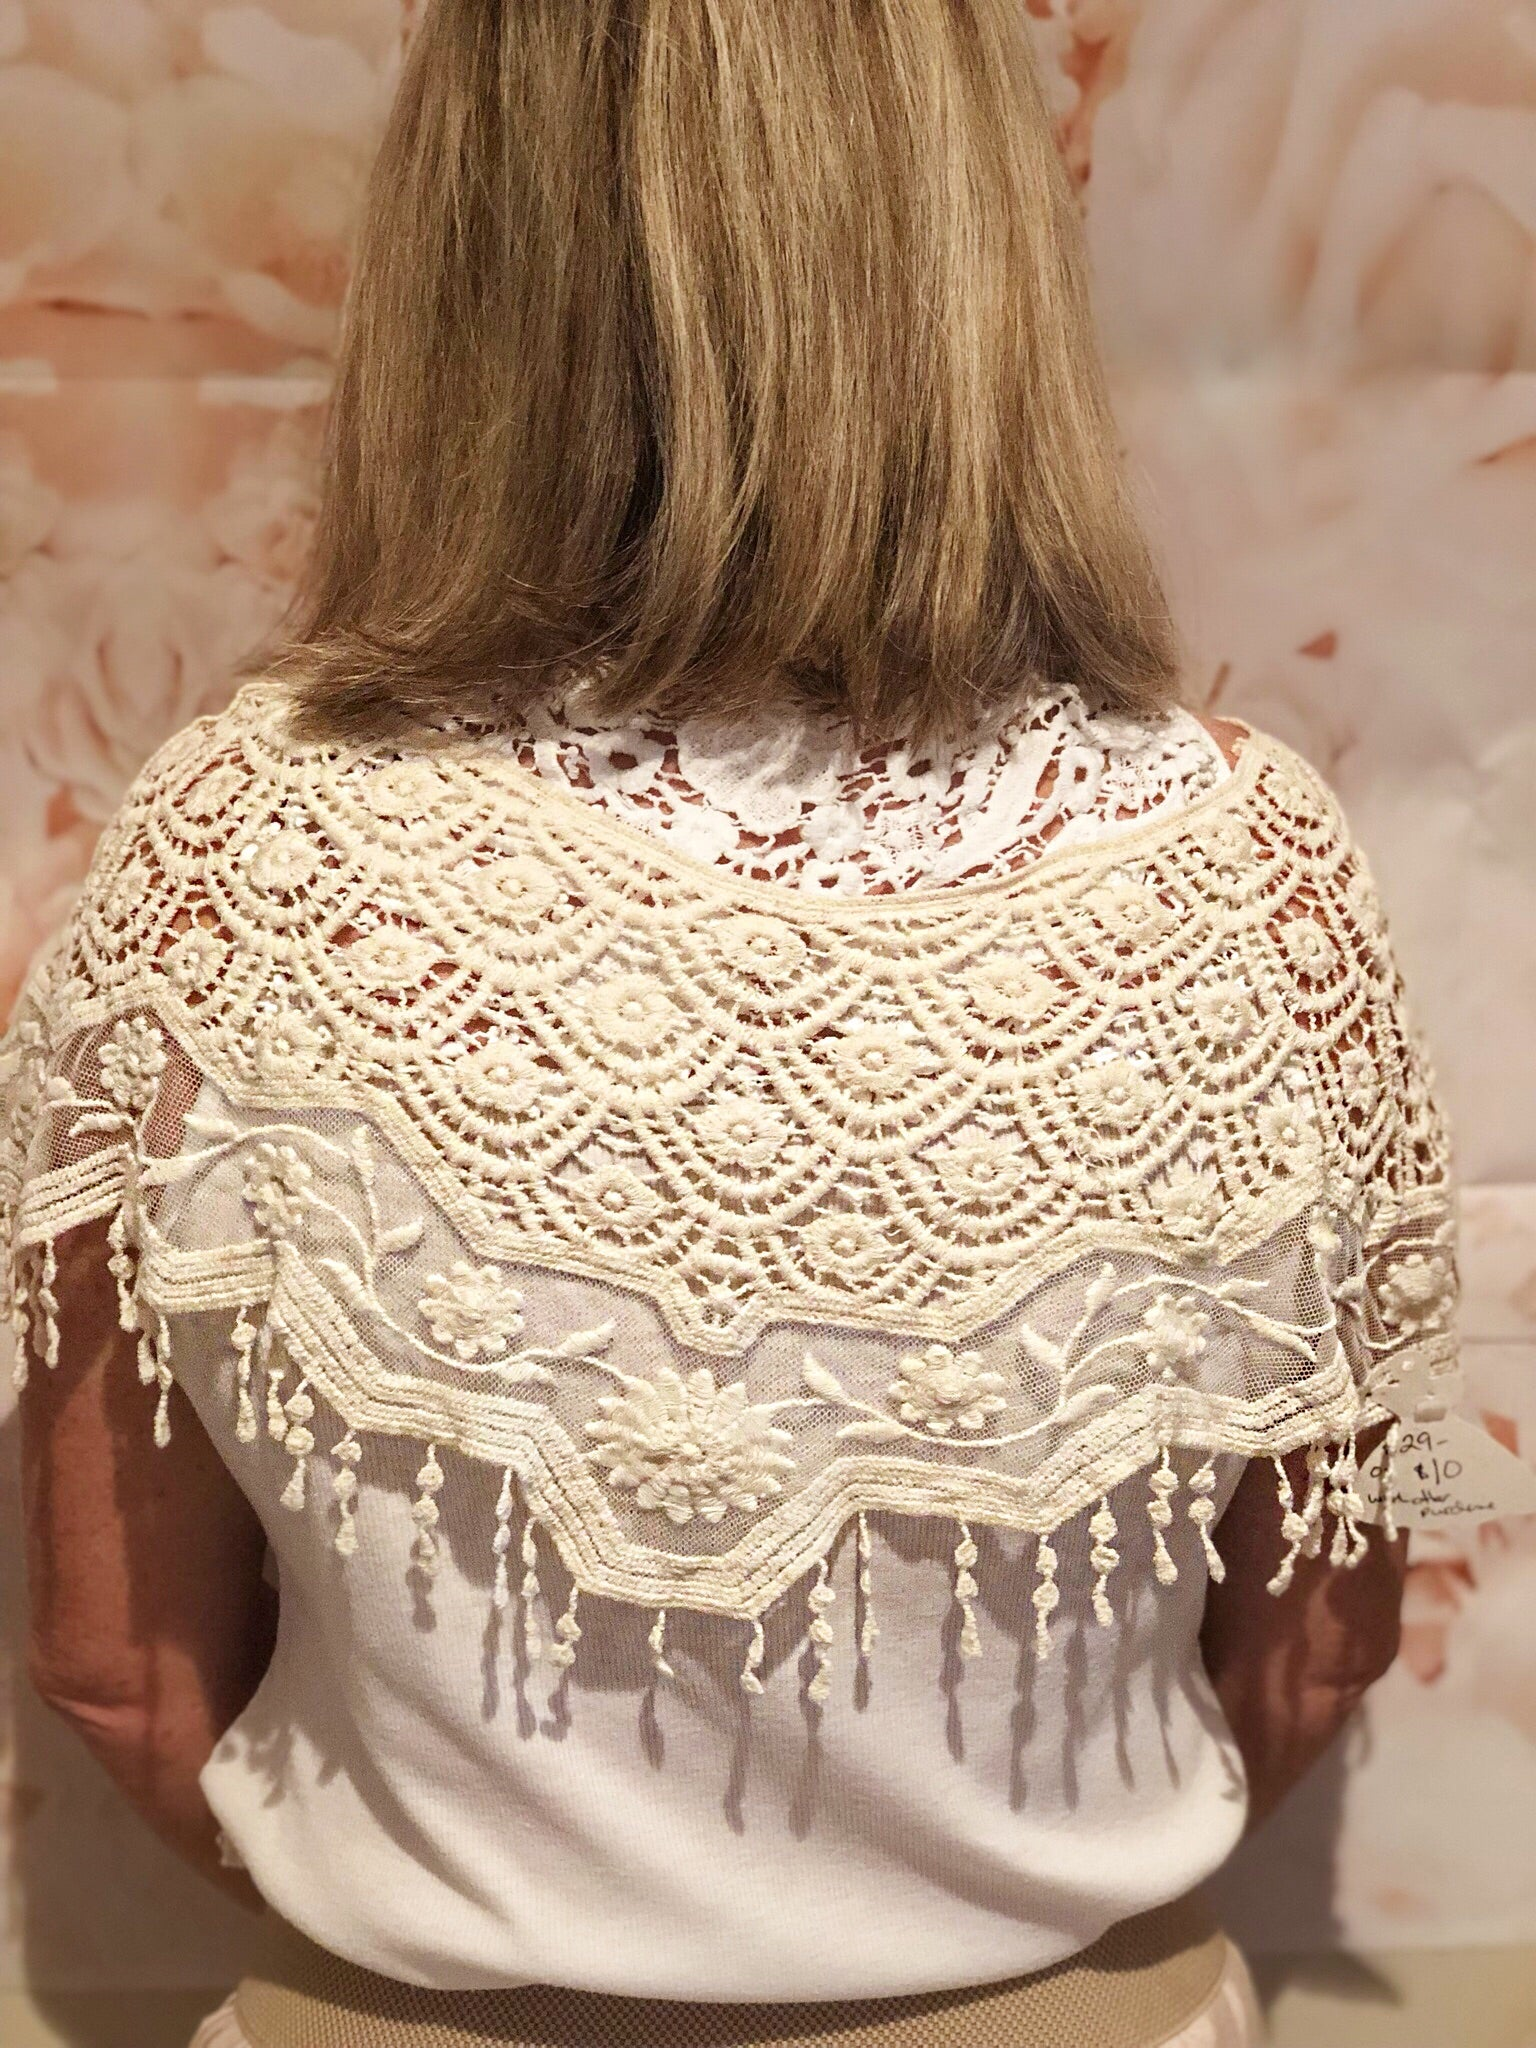 Cream Lace Shoulder Cape - Purity Lace Designs